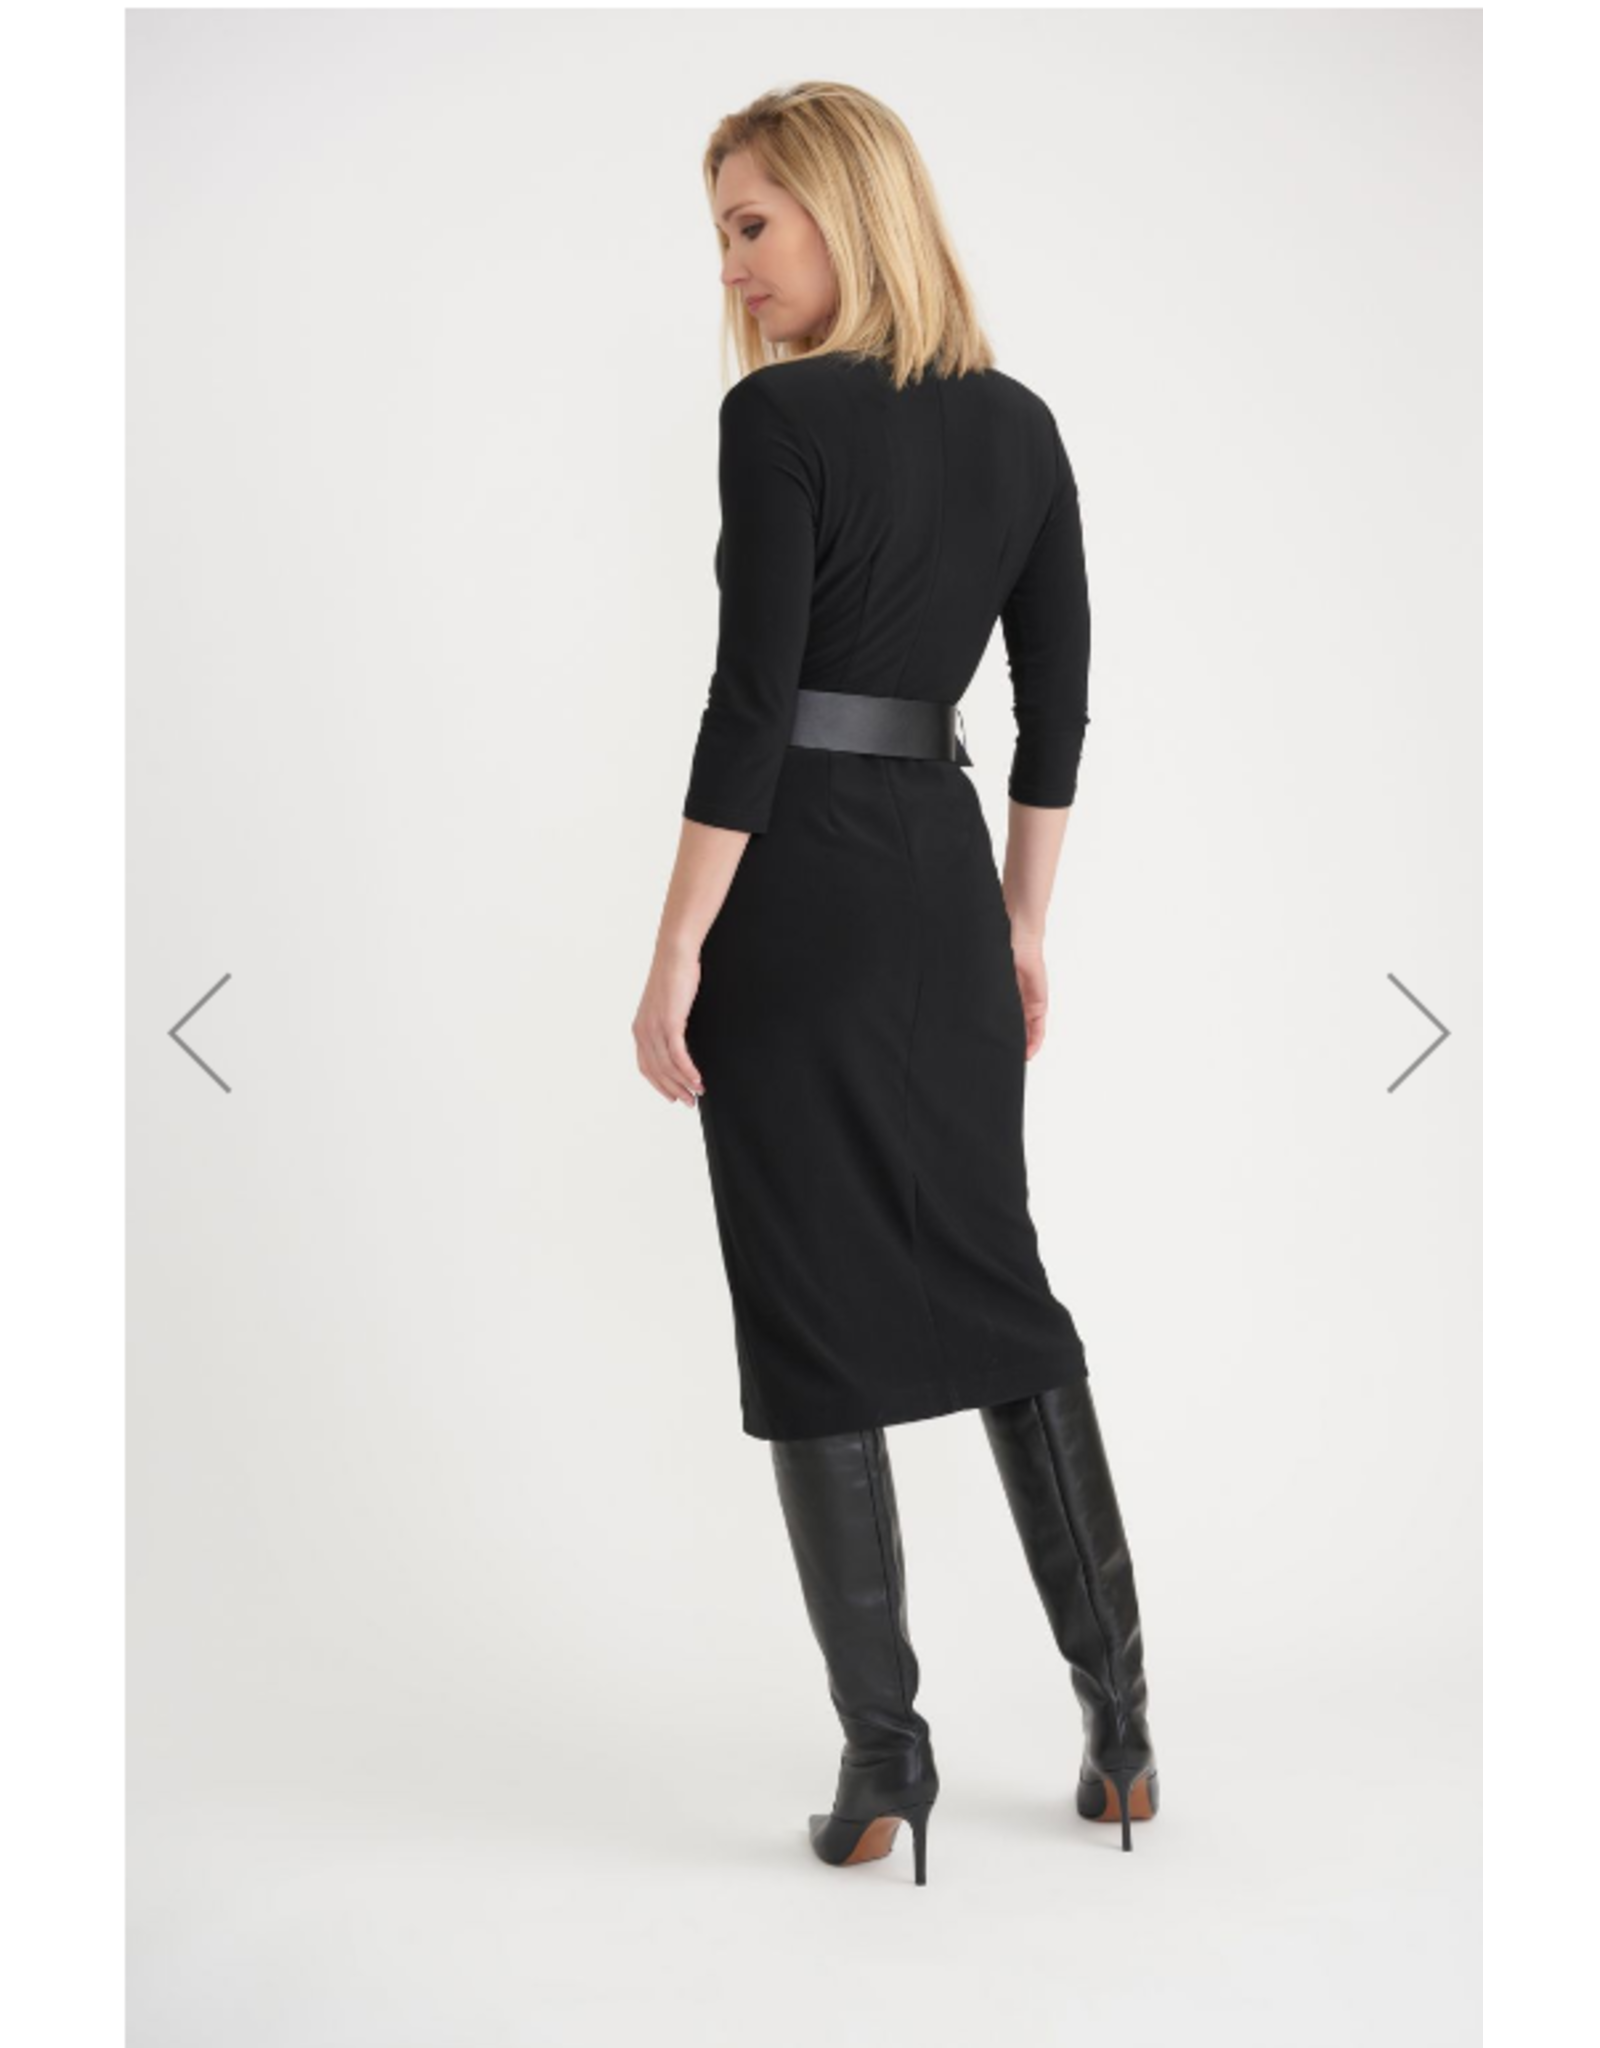 Joseph Ribkoff Black Dress With Belt